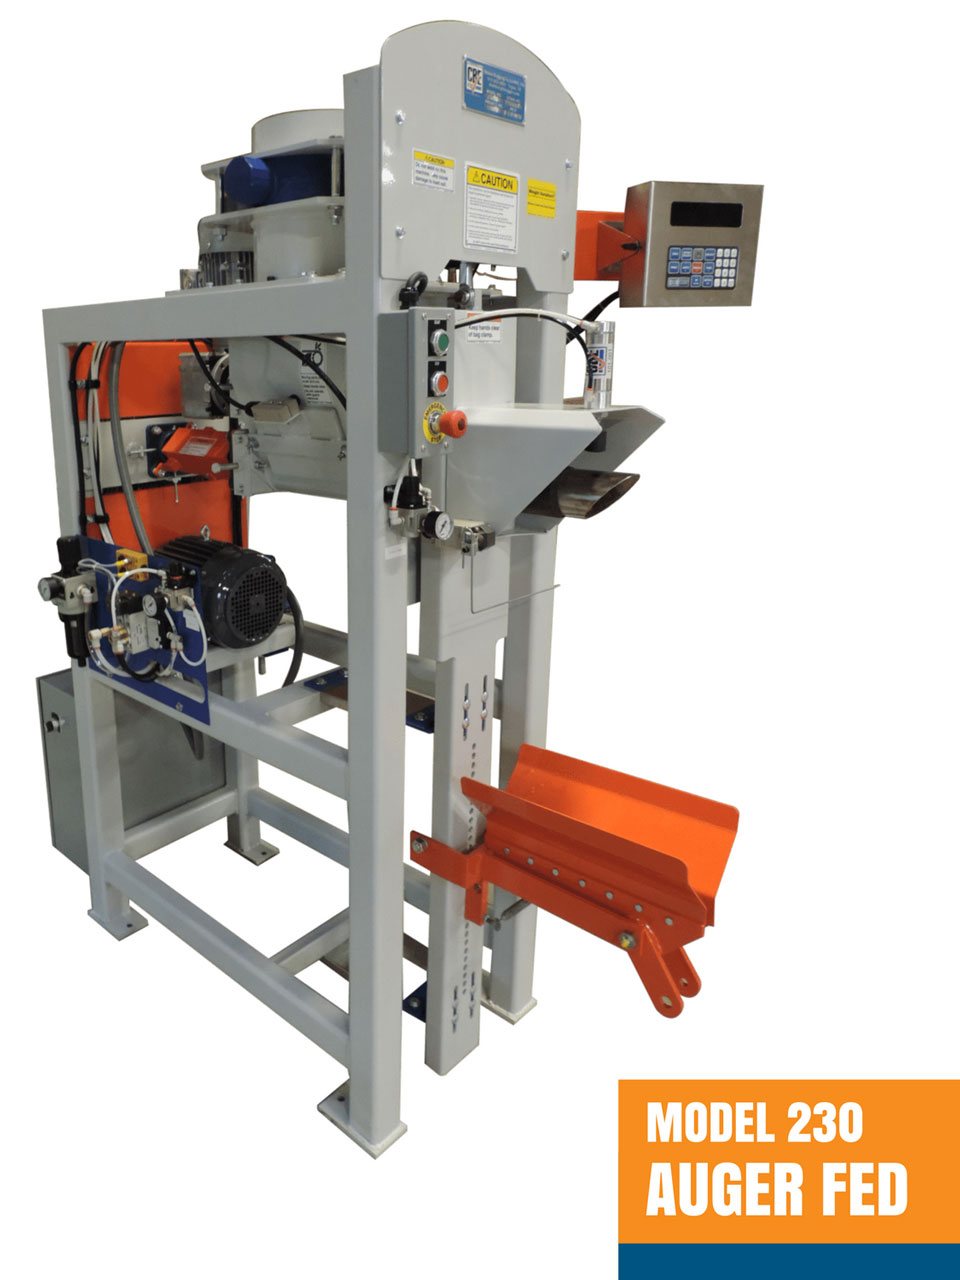 Valve Bag Filling Machines with fill rates up to 12 bags per